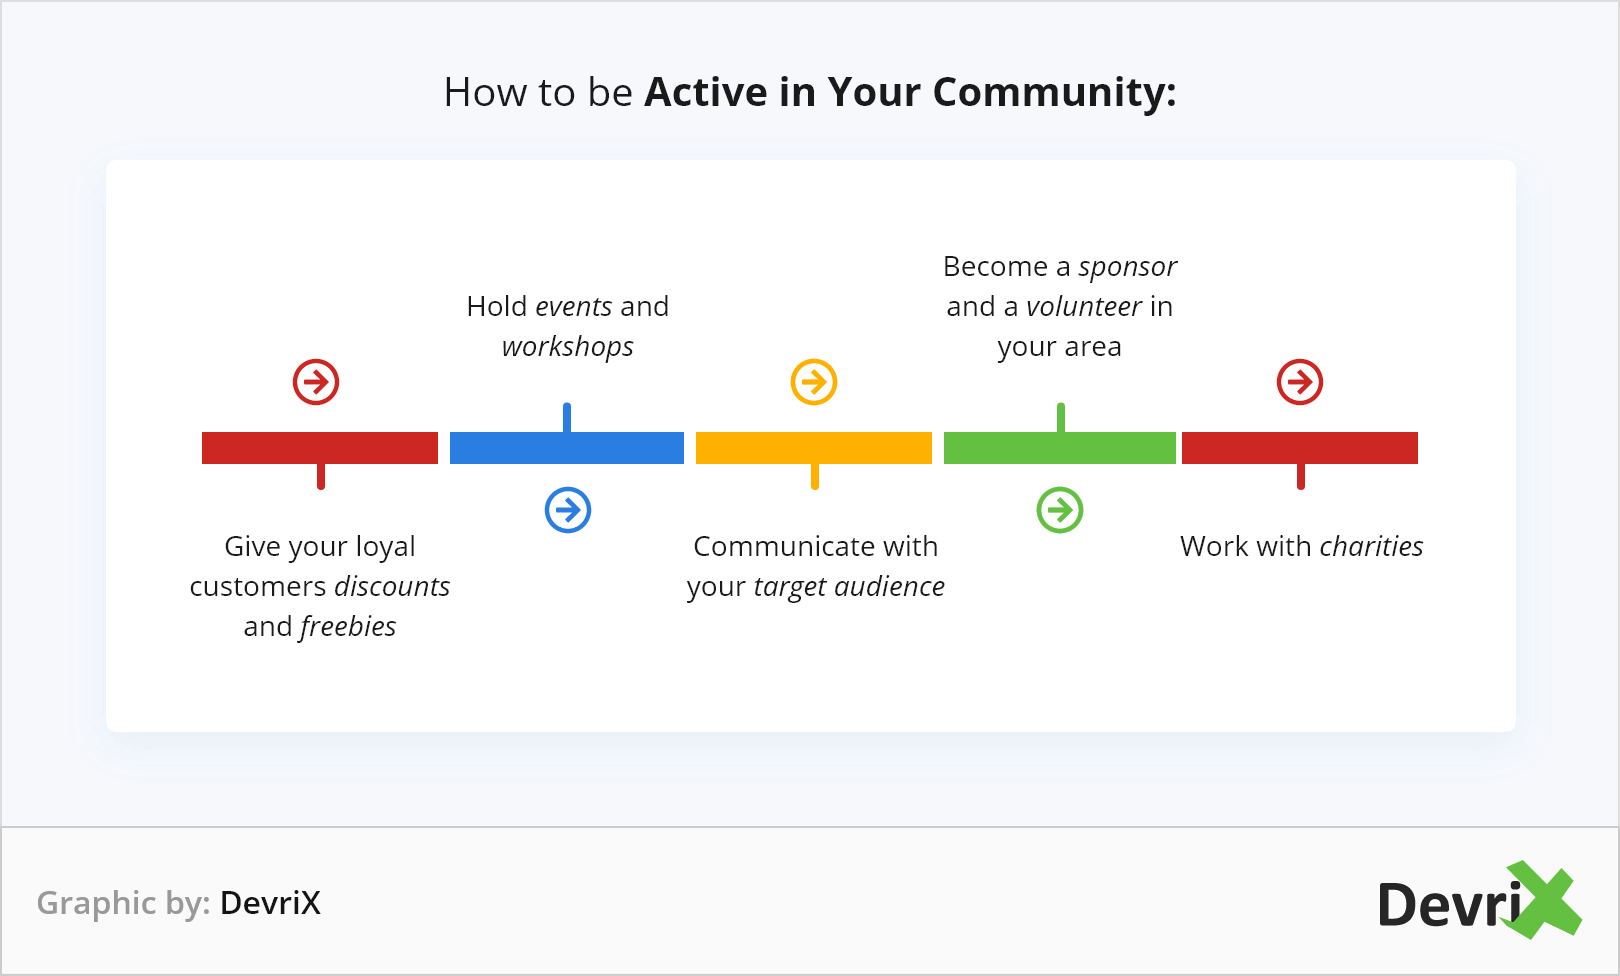 How to be Active in Your Community